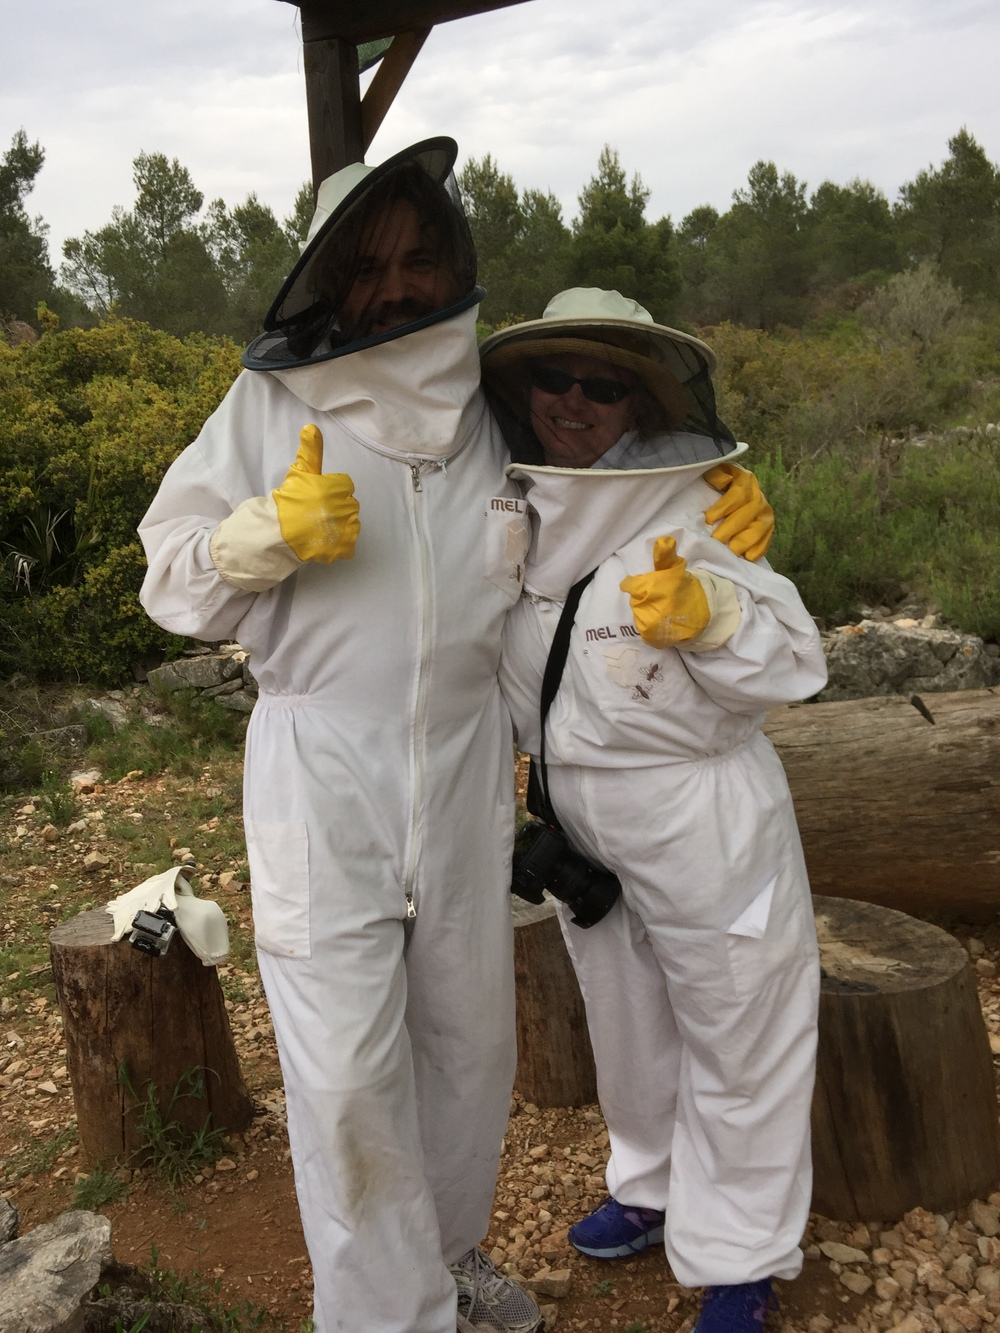 What's worse than being surrounded by angry bees? First finding out you probably don't have a hotel room in Barcelona, and then hanging out with angry bees. True story.